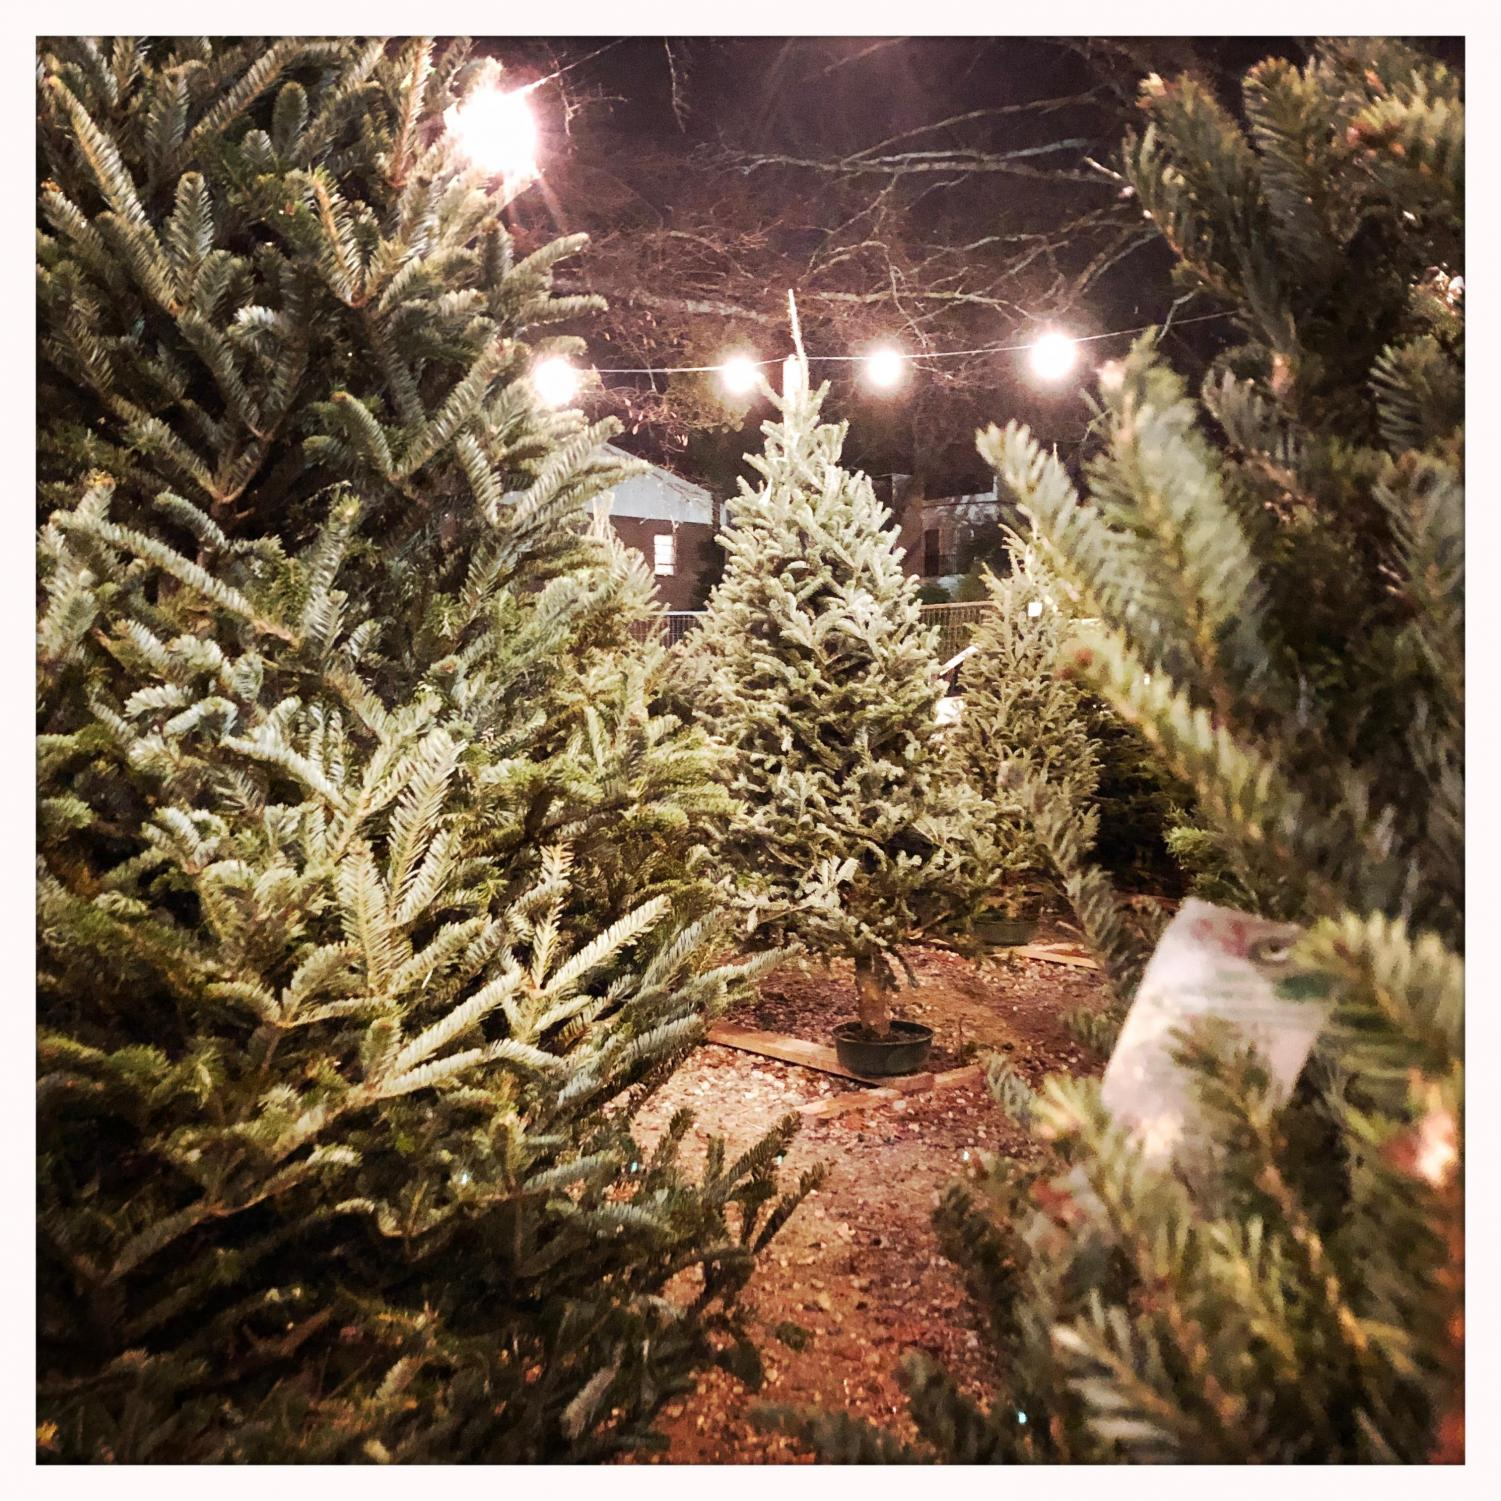 Trees are lined up row by row to make selecting a tree easy for customers. The lot is also festively decorated with lights.